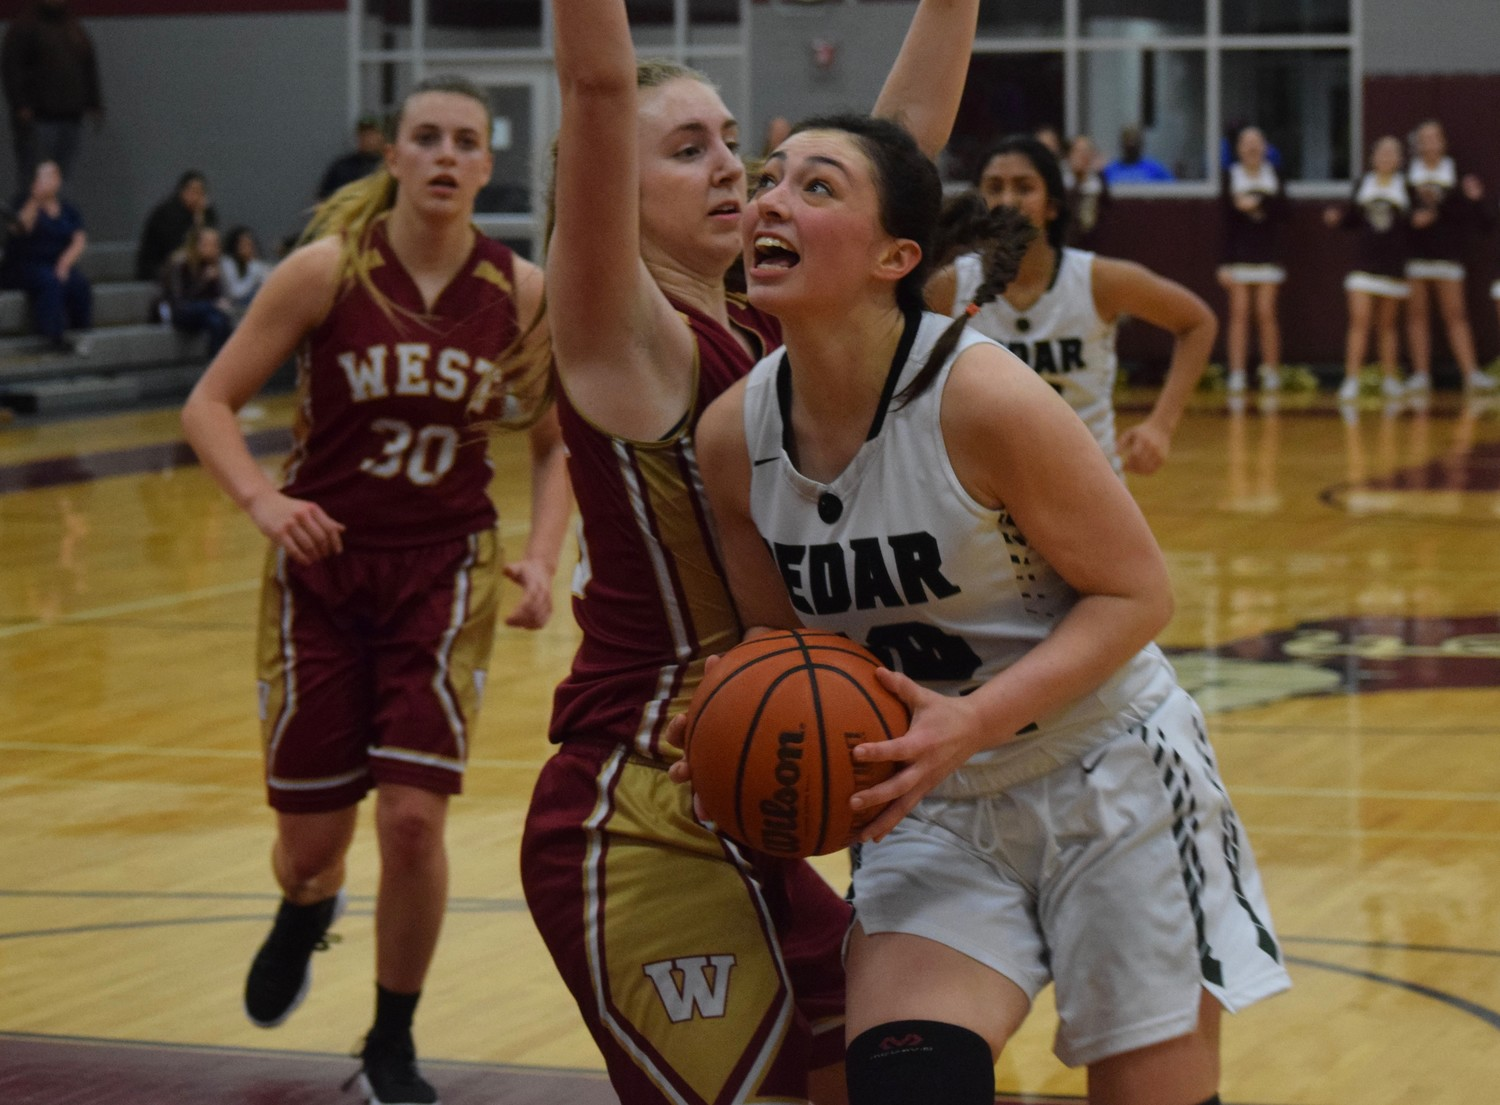 Nicole Leff and Cedar Park made it to the regional semifinals for the first time in school history and pushed their winning streak to 16 games on Tuesday night with a 58-31 win against Magnolia West 58-31 at Flatonia High School.